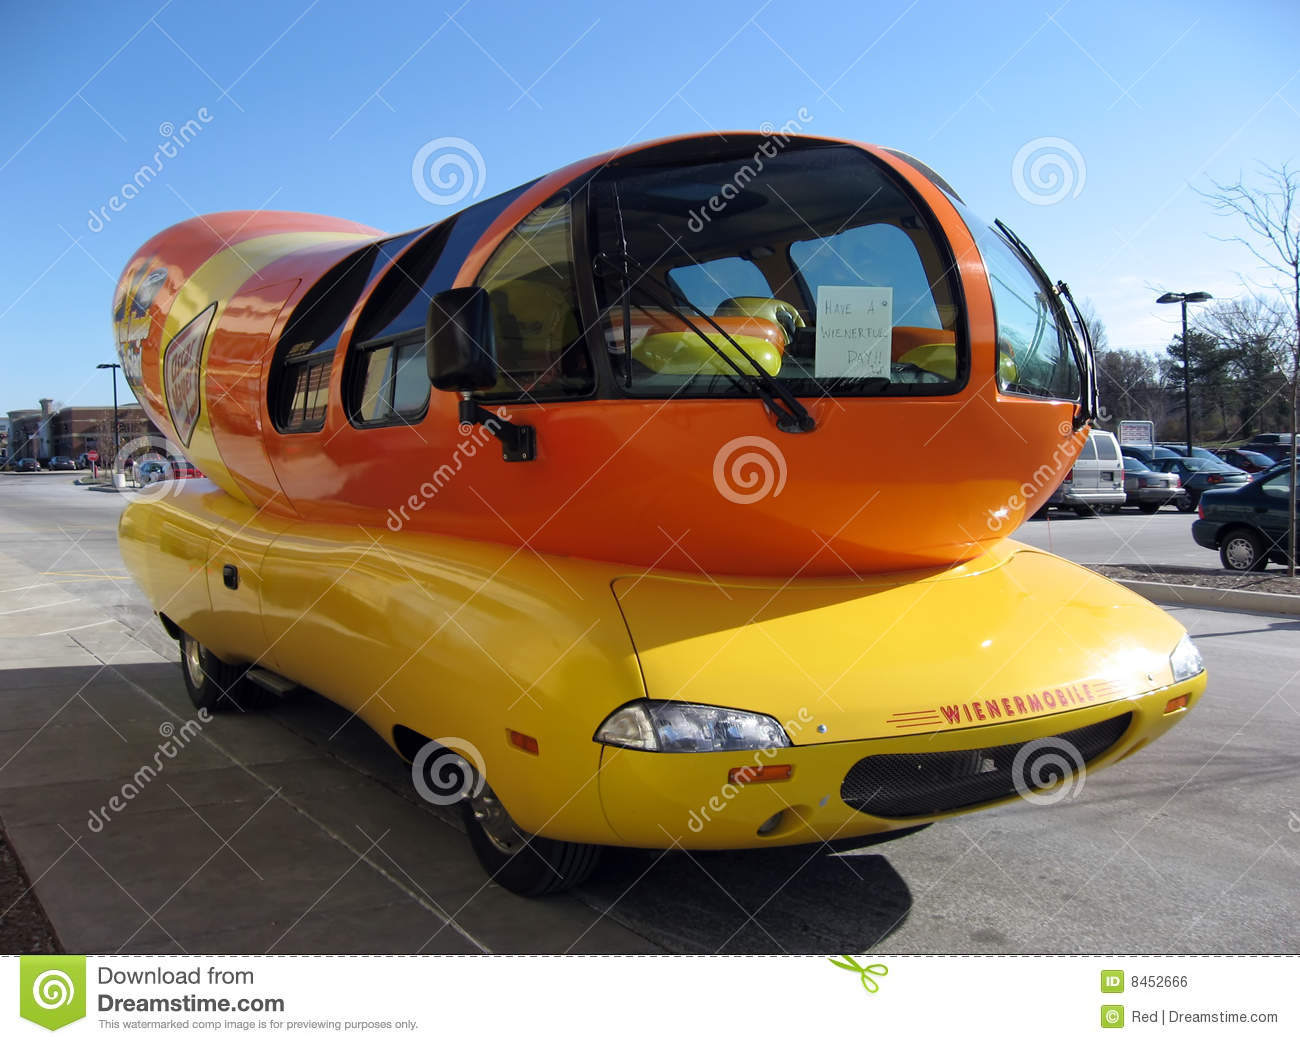 282251642047 furthermore Royalty Free Stock Image Oscar Mayer Wiener Wagon Image8452666 also Oscar Mayer Wienermobile Va additionally Wienermobile also Going Ham Over Wienermobile. on oscar mayer wienermobile bridge